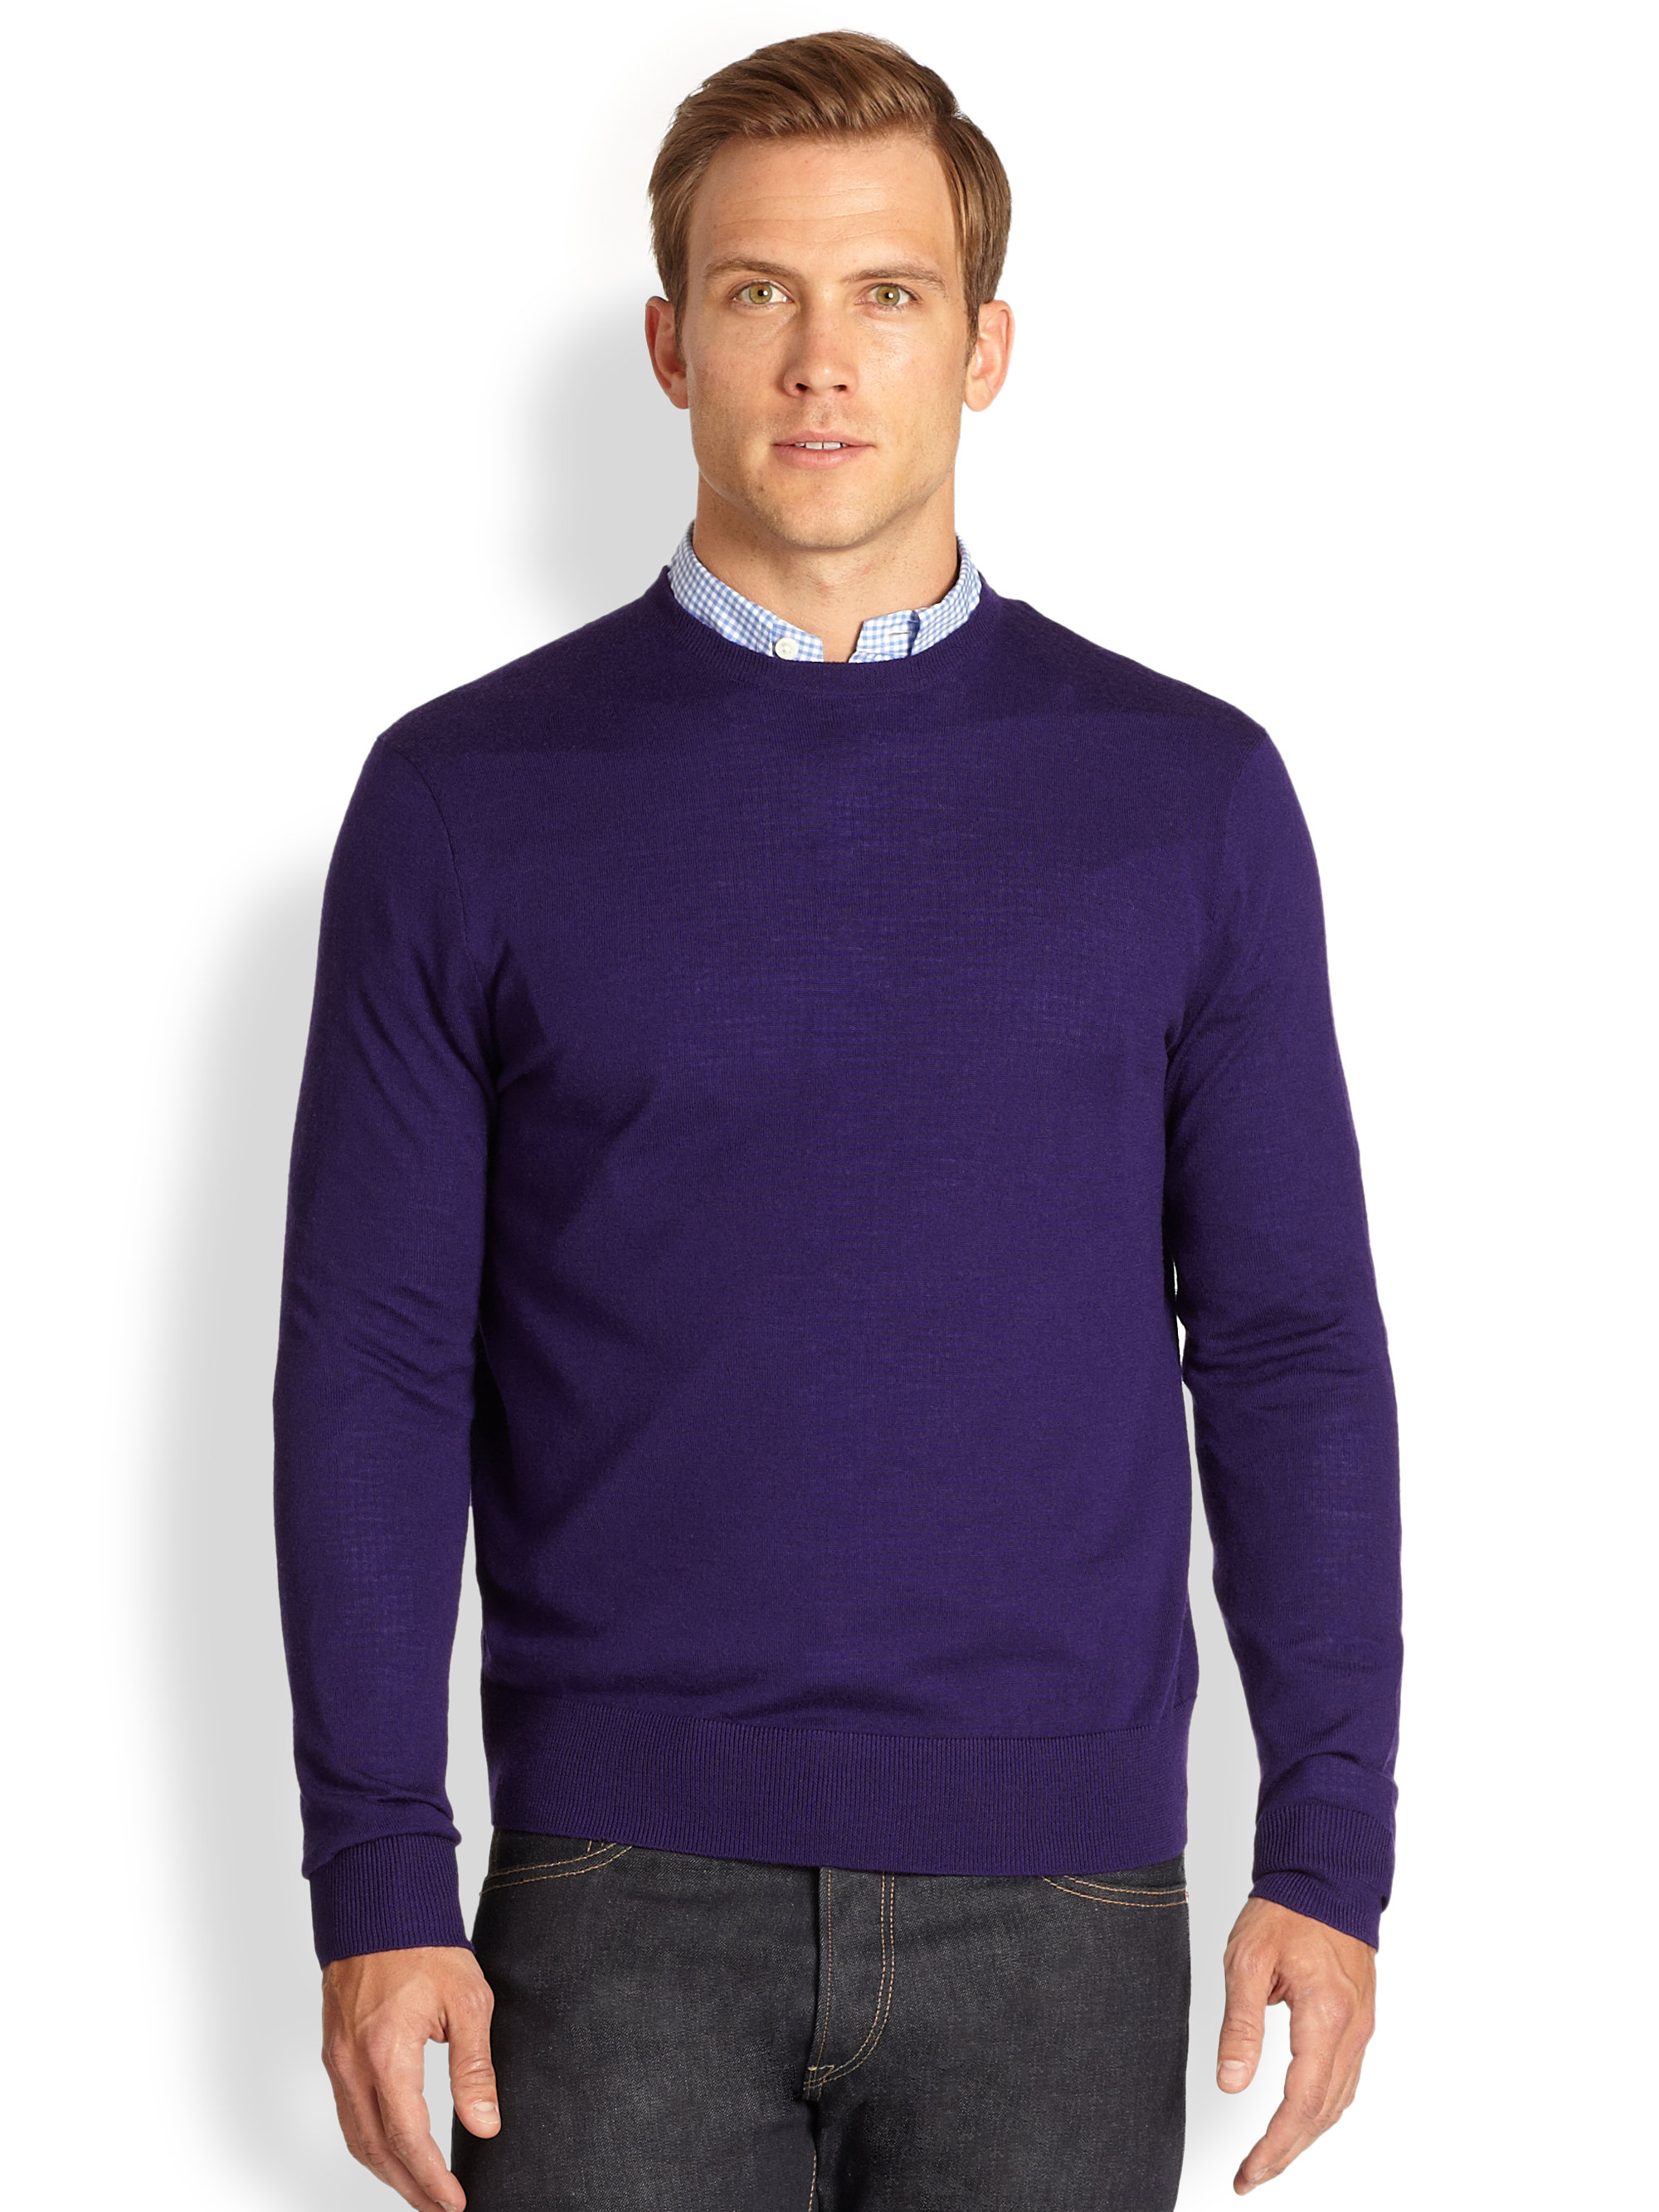 Shop for Men's Jumpers & Cardigans from our Men range at John Lewis & Partners. Free Delivery on orders over £